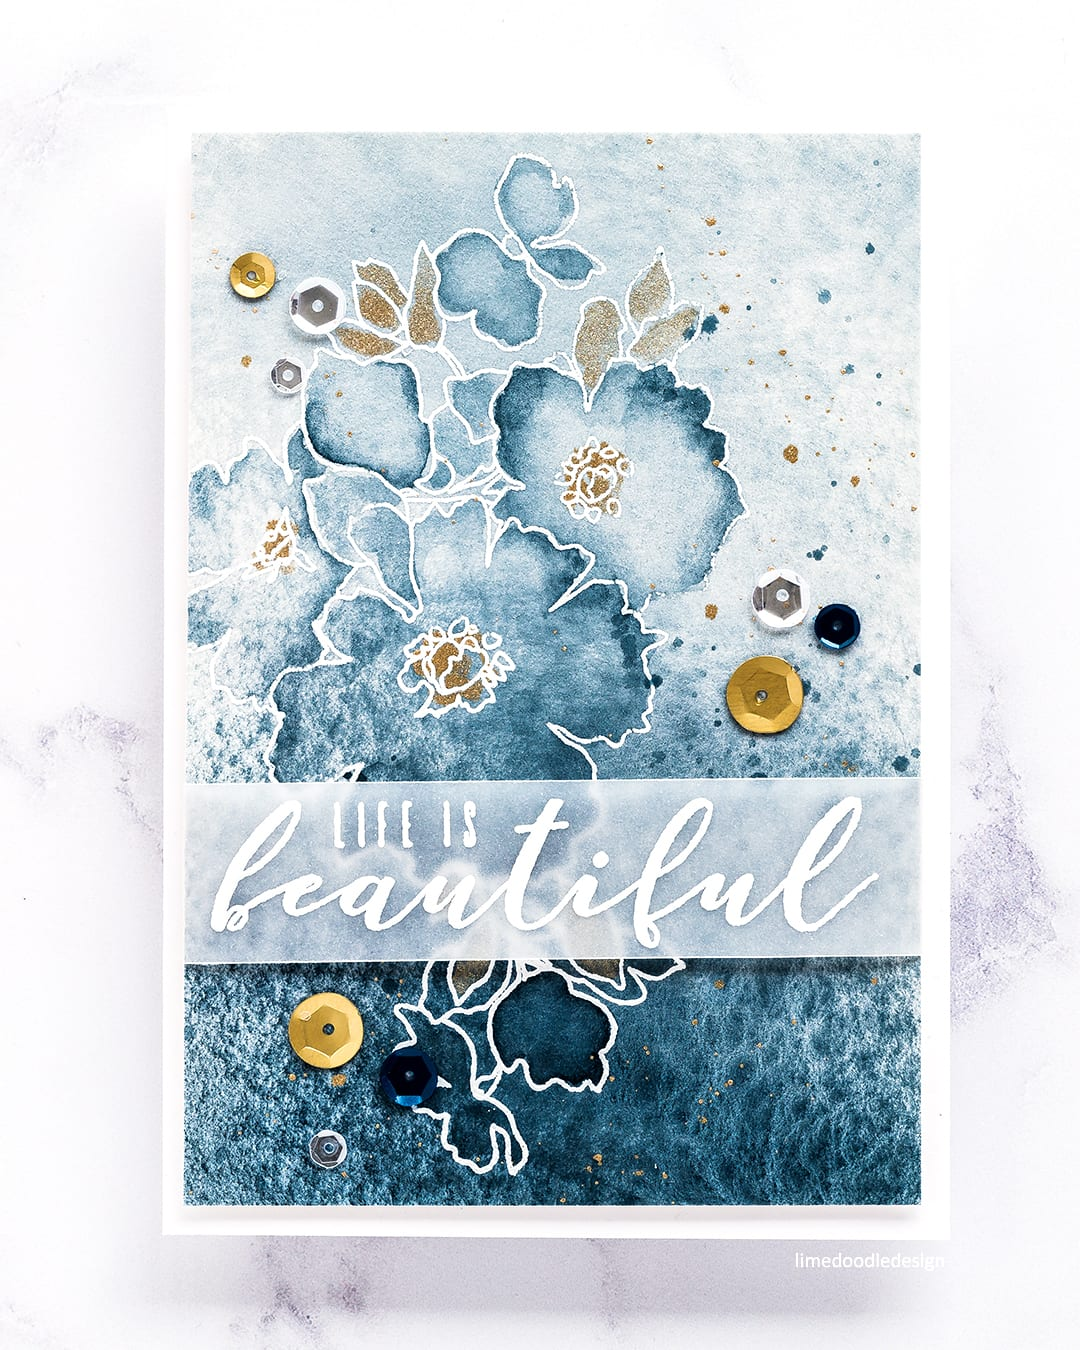 Watercoloured tone on tone card by Debby Hughes using the new August release from Altenew. Find out more here: https://limedoodledesign.com/2017/08/altenew-august-2017-release-blog-hop-day-2-giveaway/